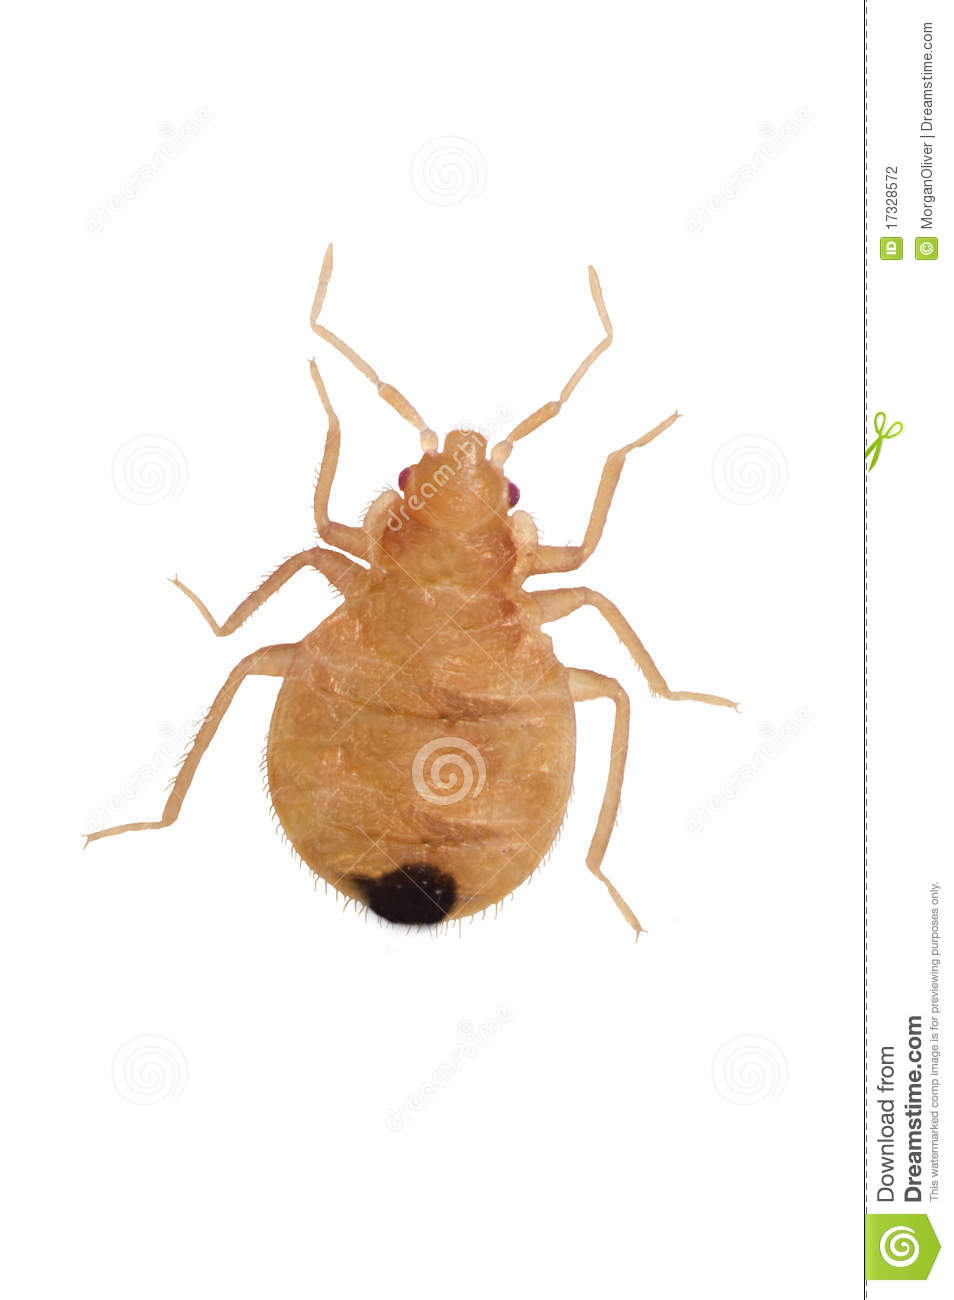 Close Up Juvenile Bedbugs Stock Photo Image Of Young 17328572